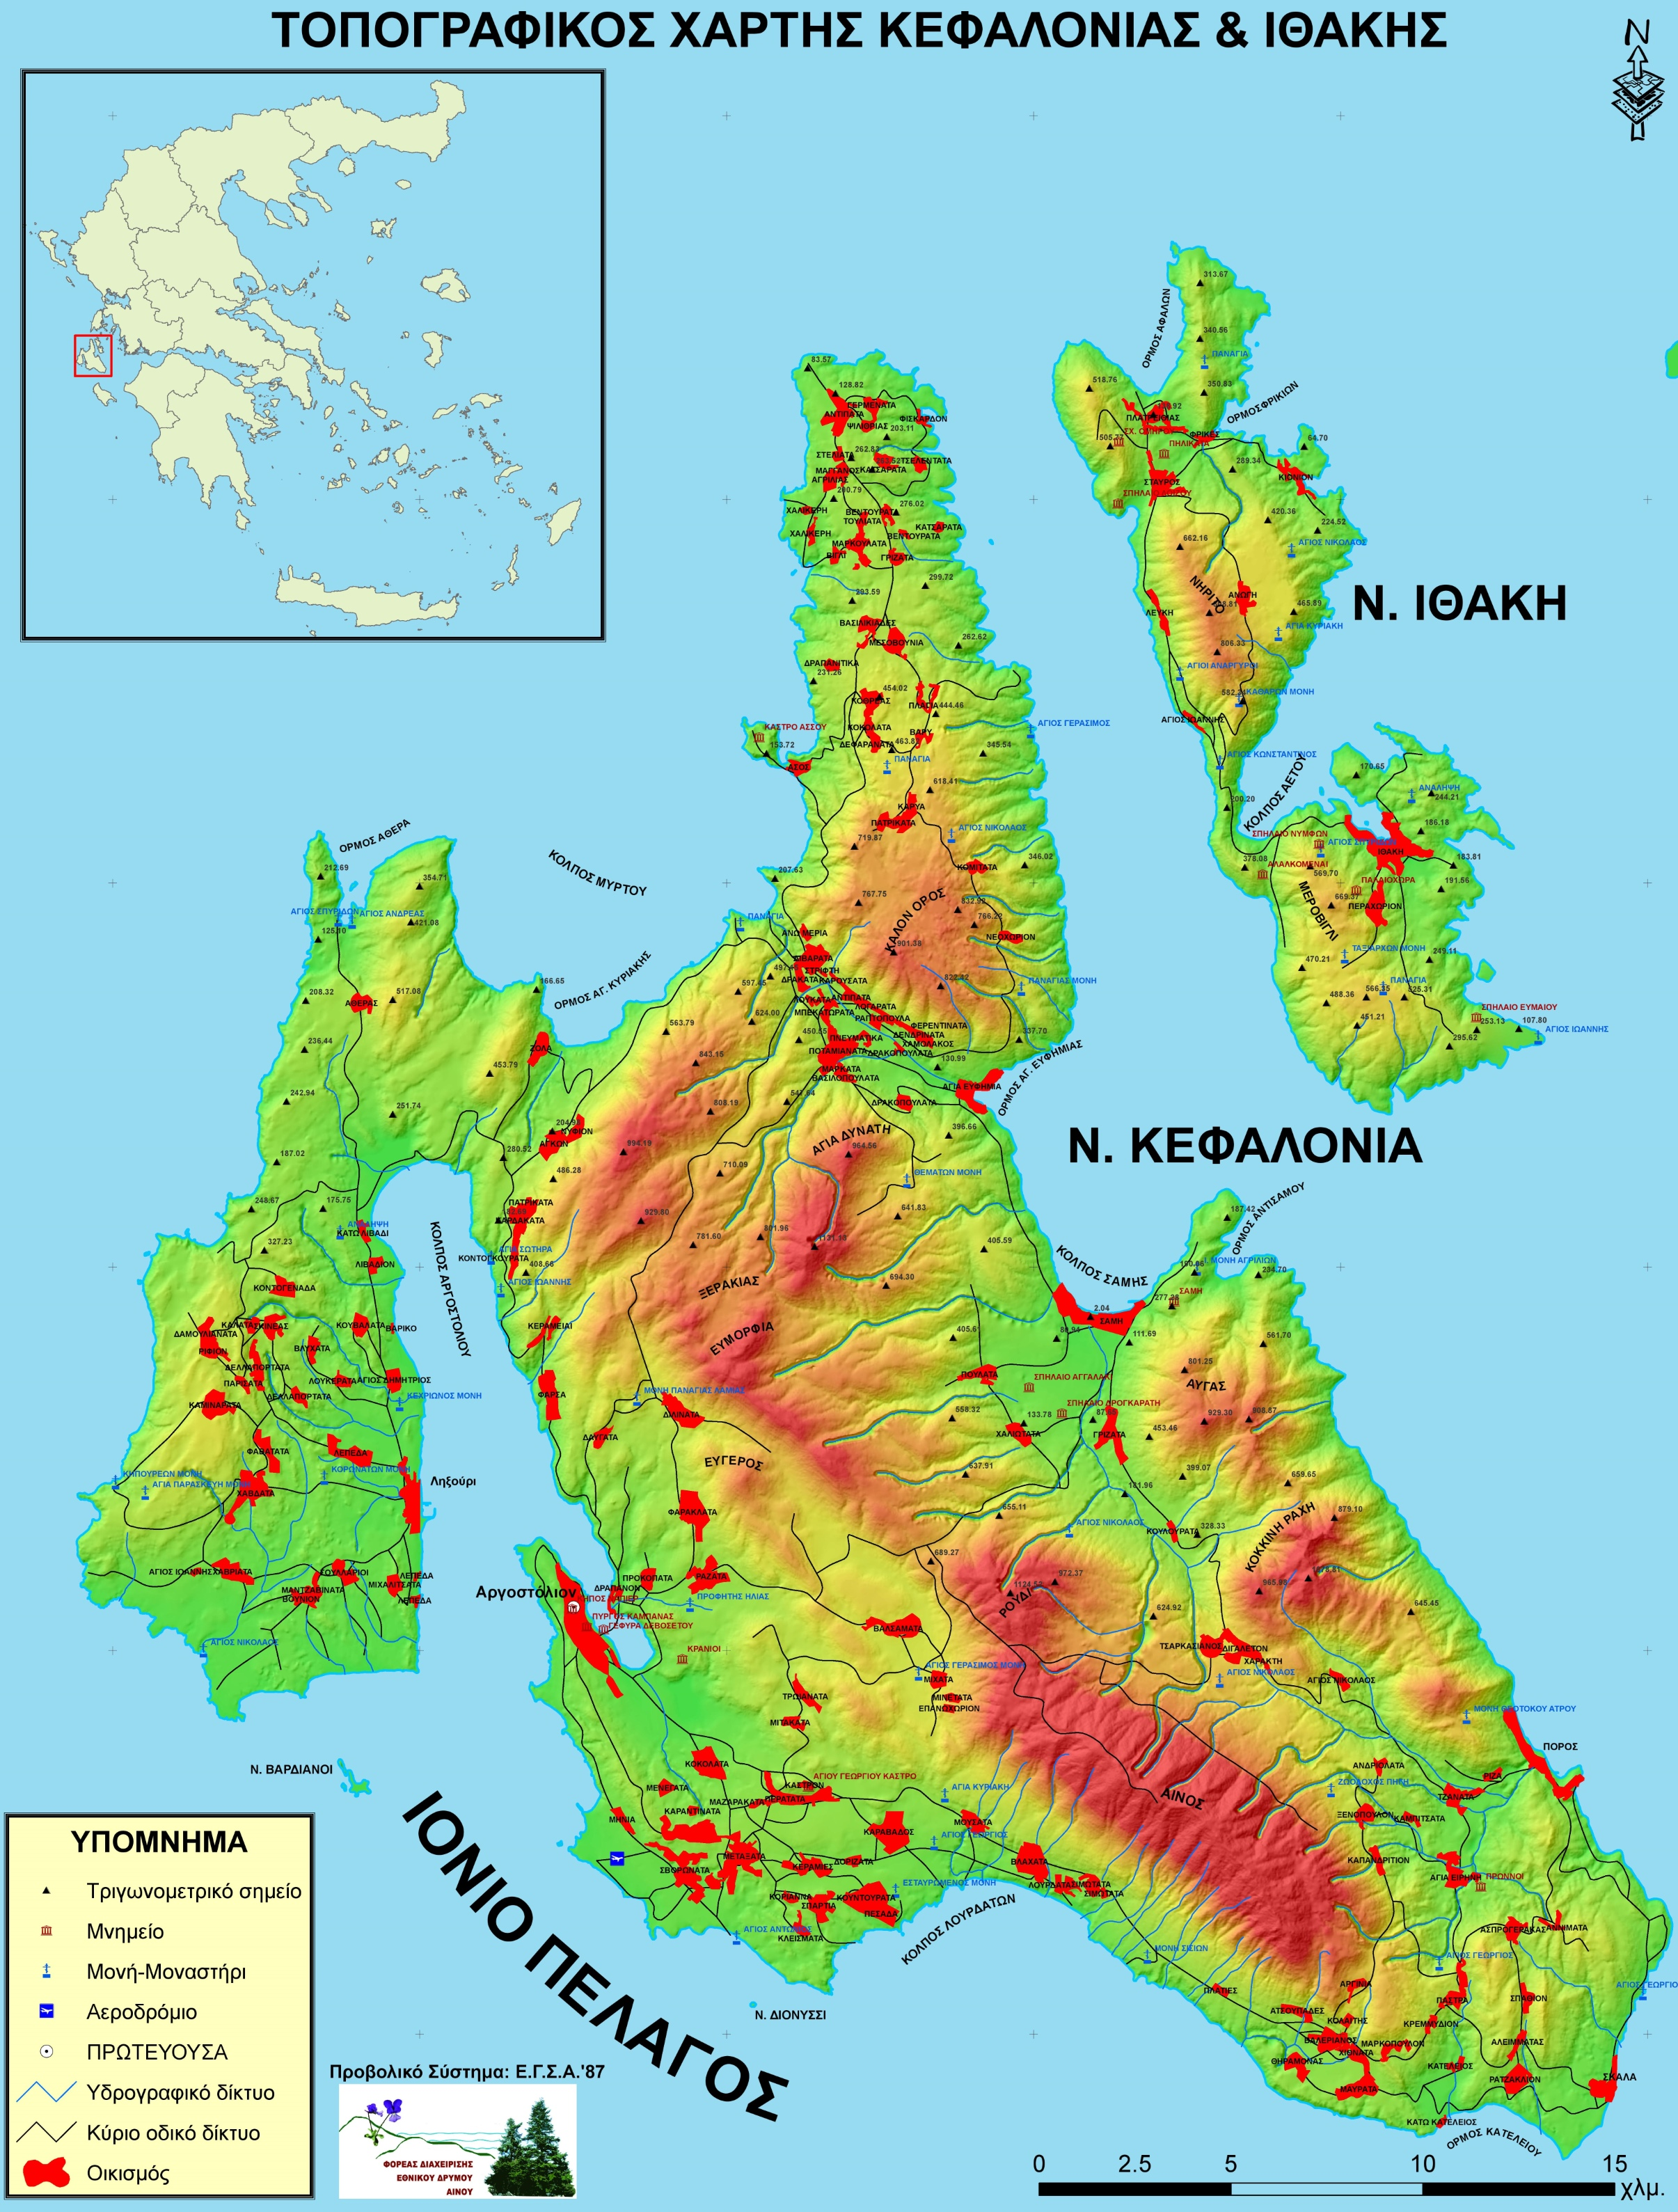 Kefalonia Island Map Kefalonia topographic map